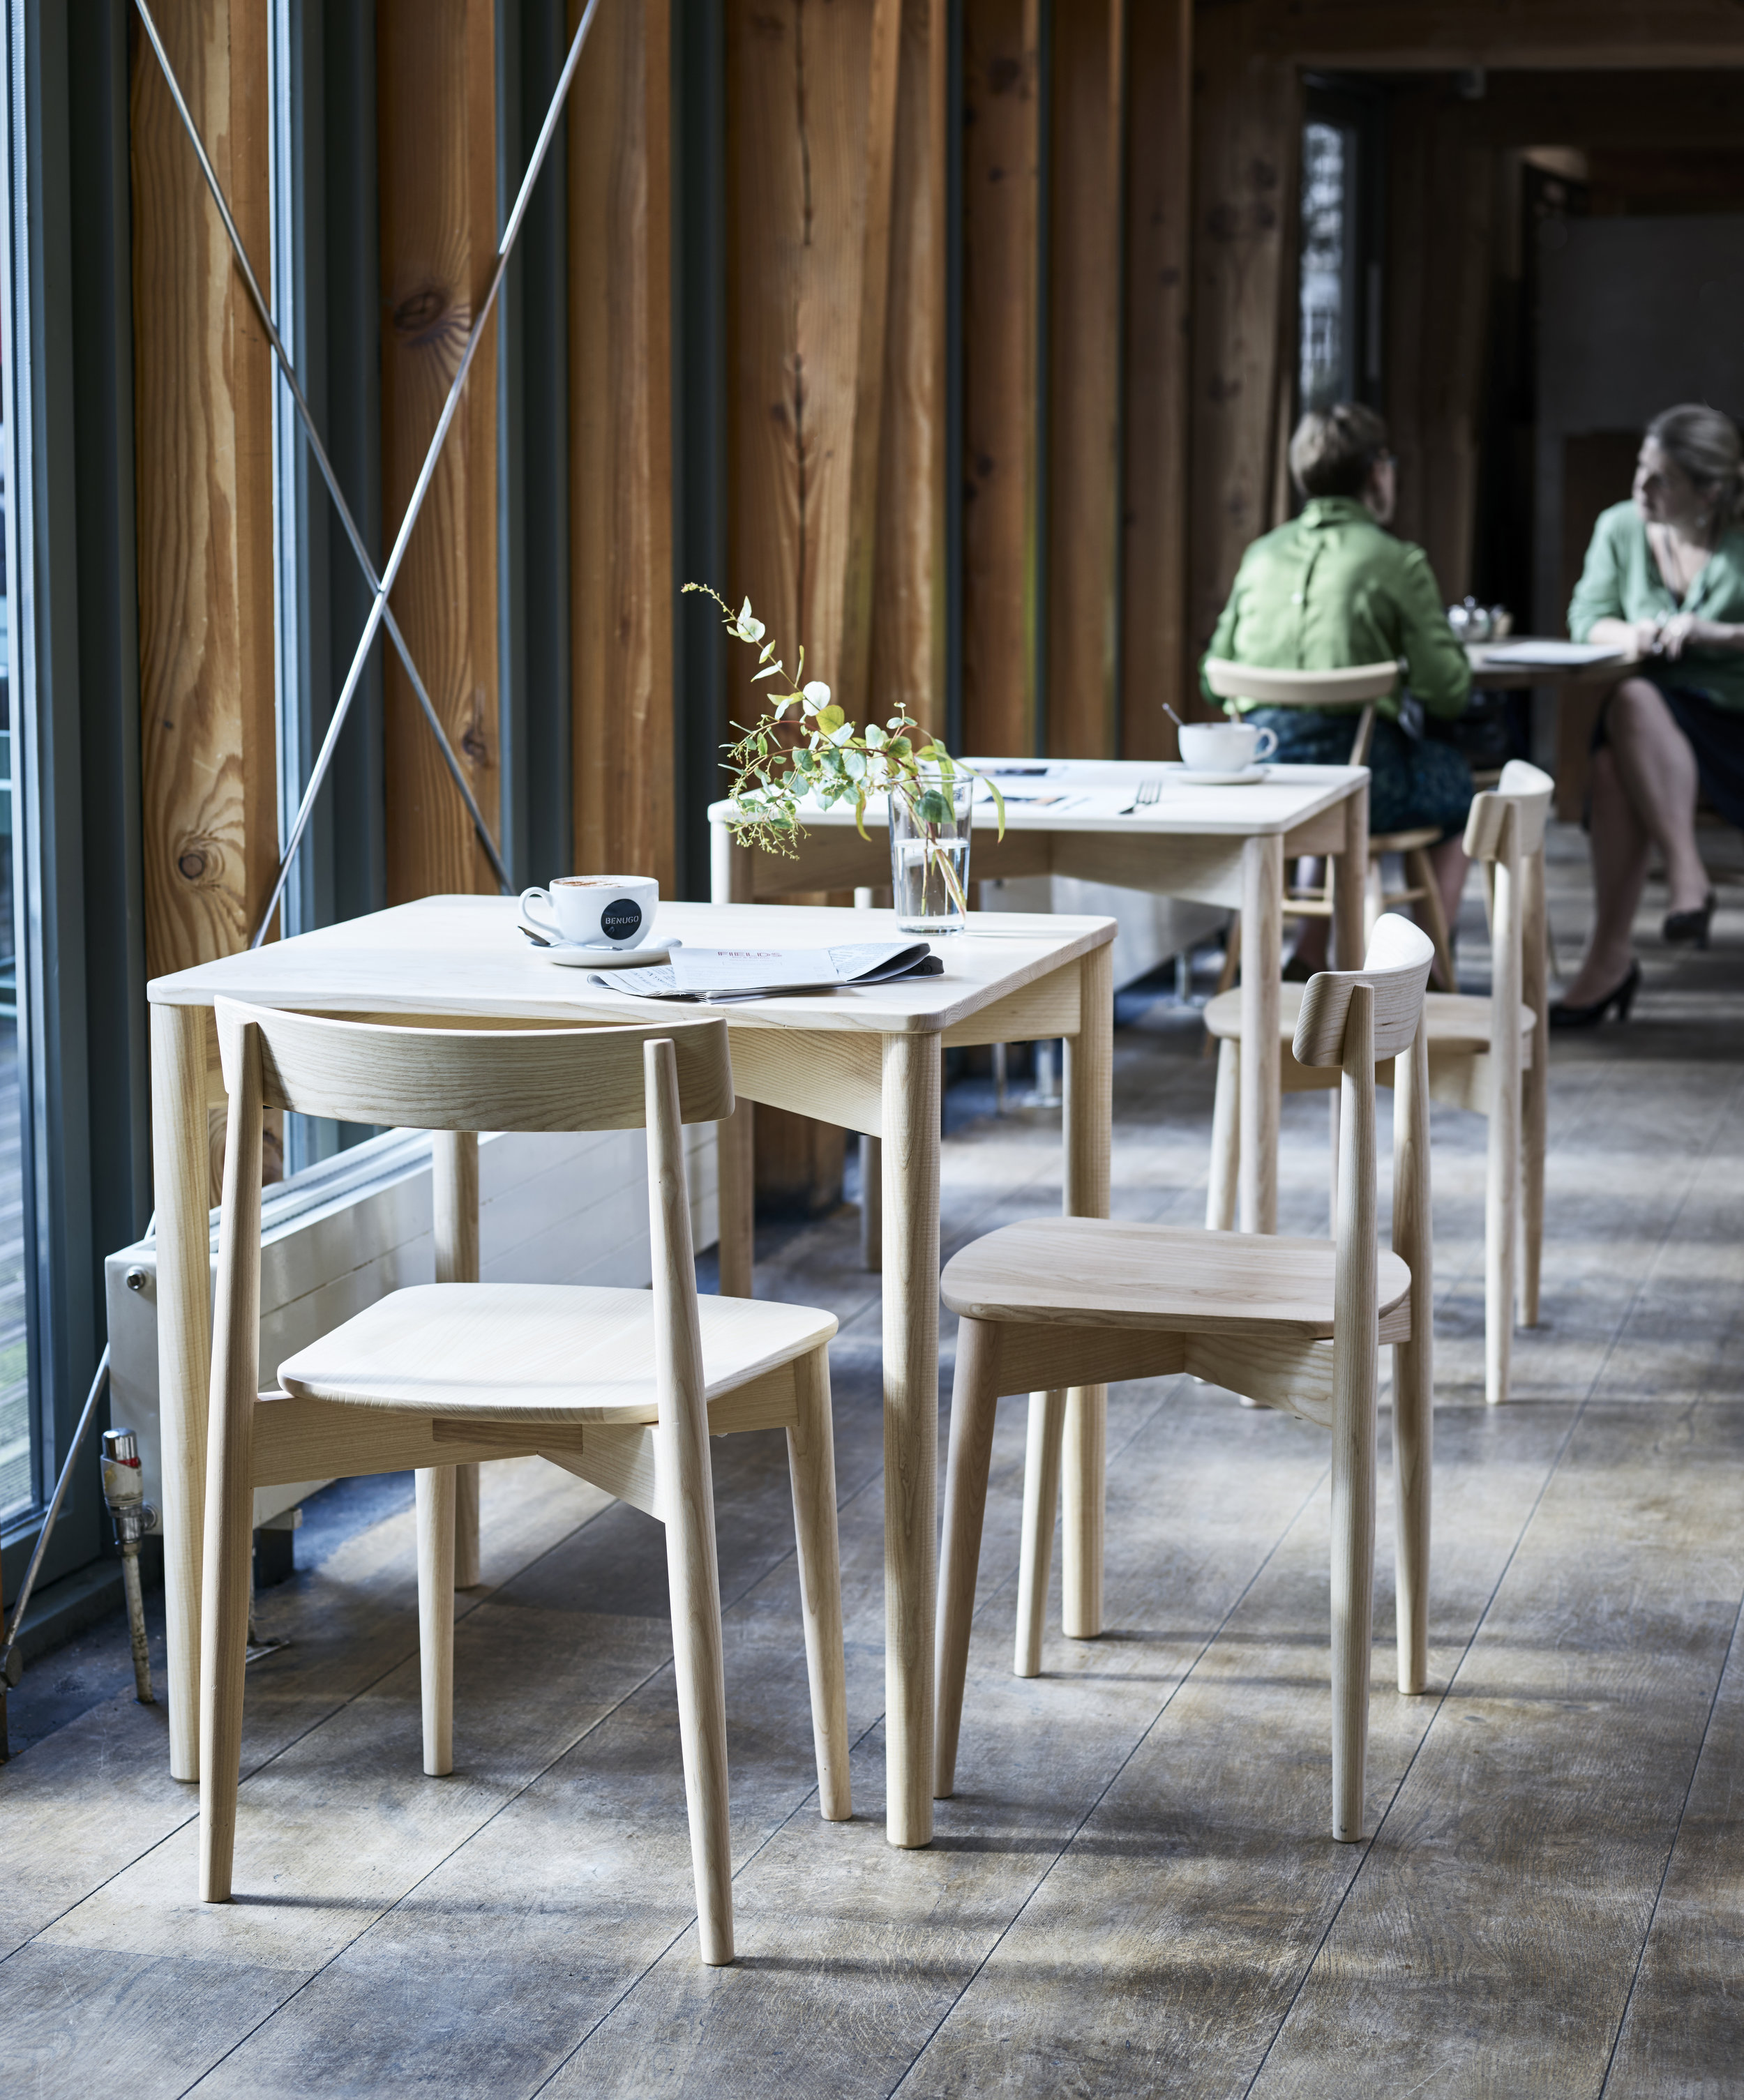 Dylan Freeth 'Lara' Chairs and 'Luca' Tables Image Credit: Ercol